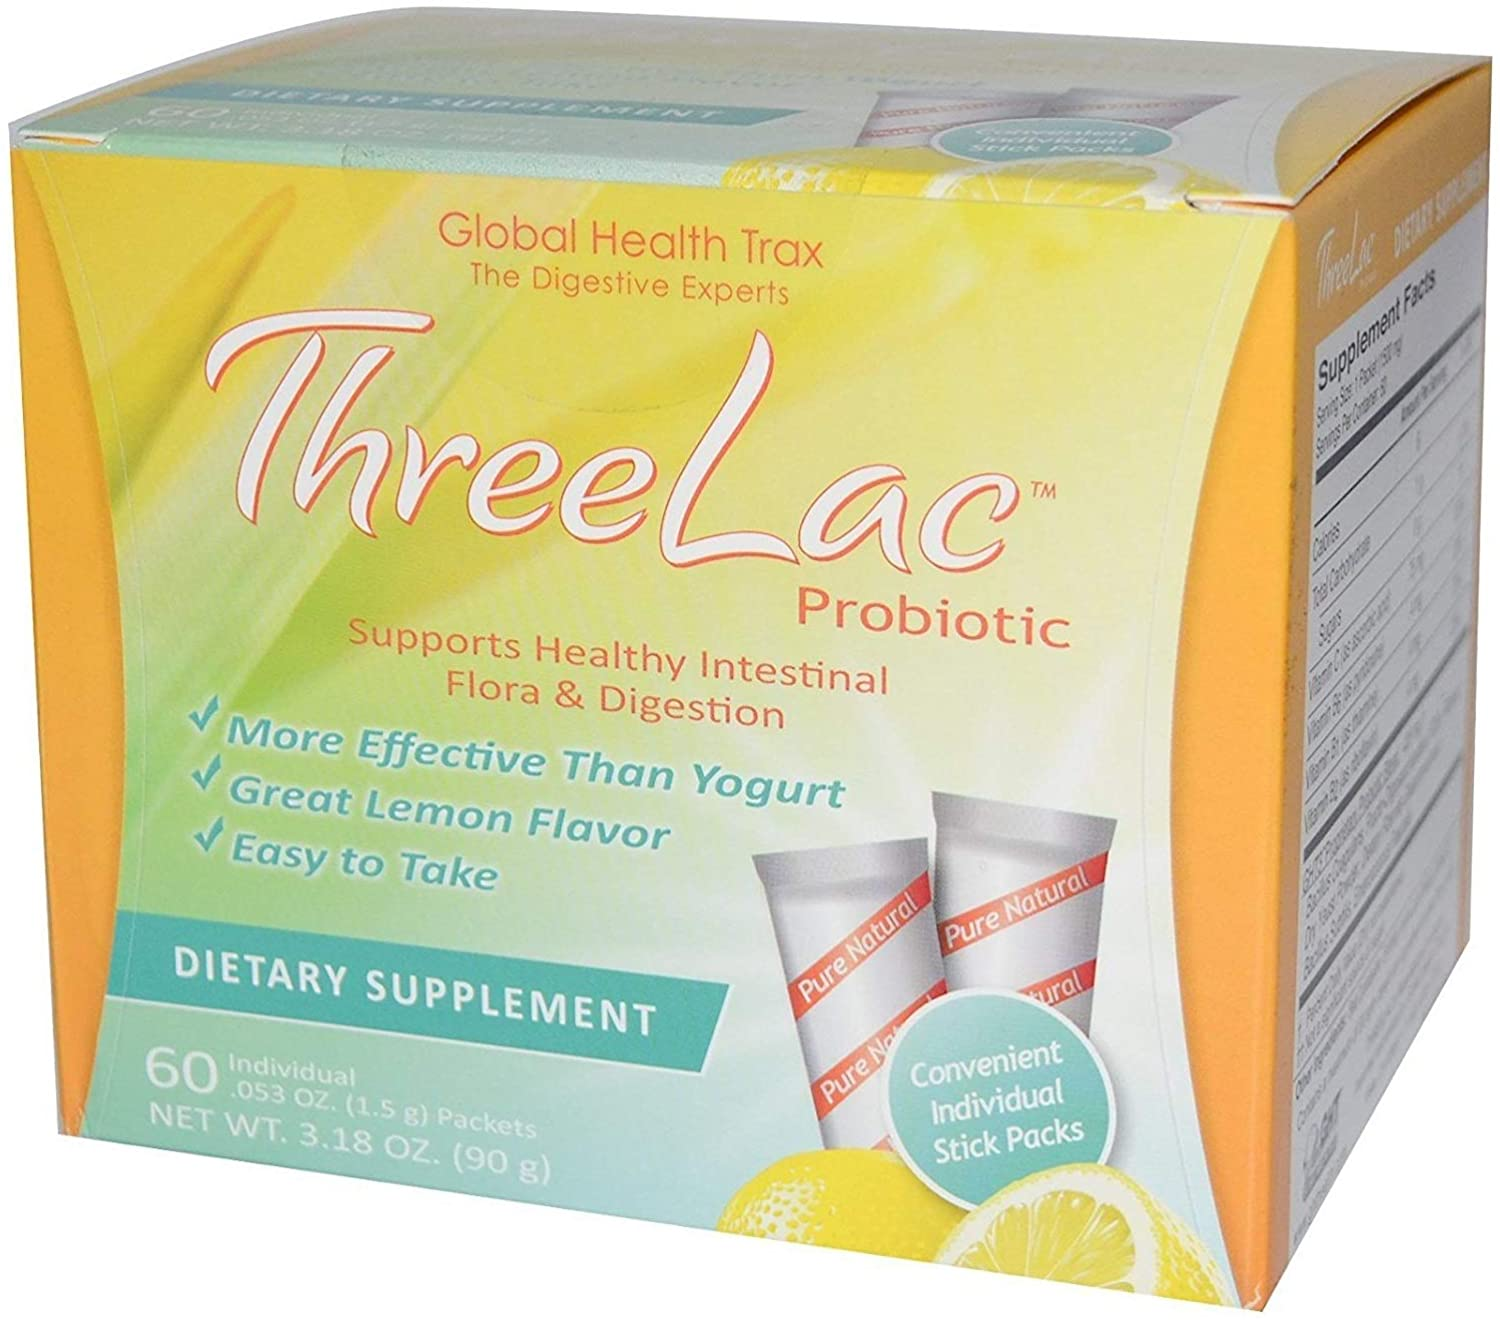 ThreeLac Probiotic